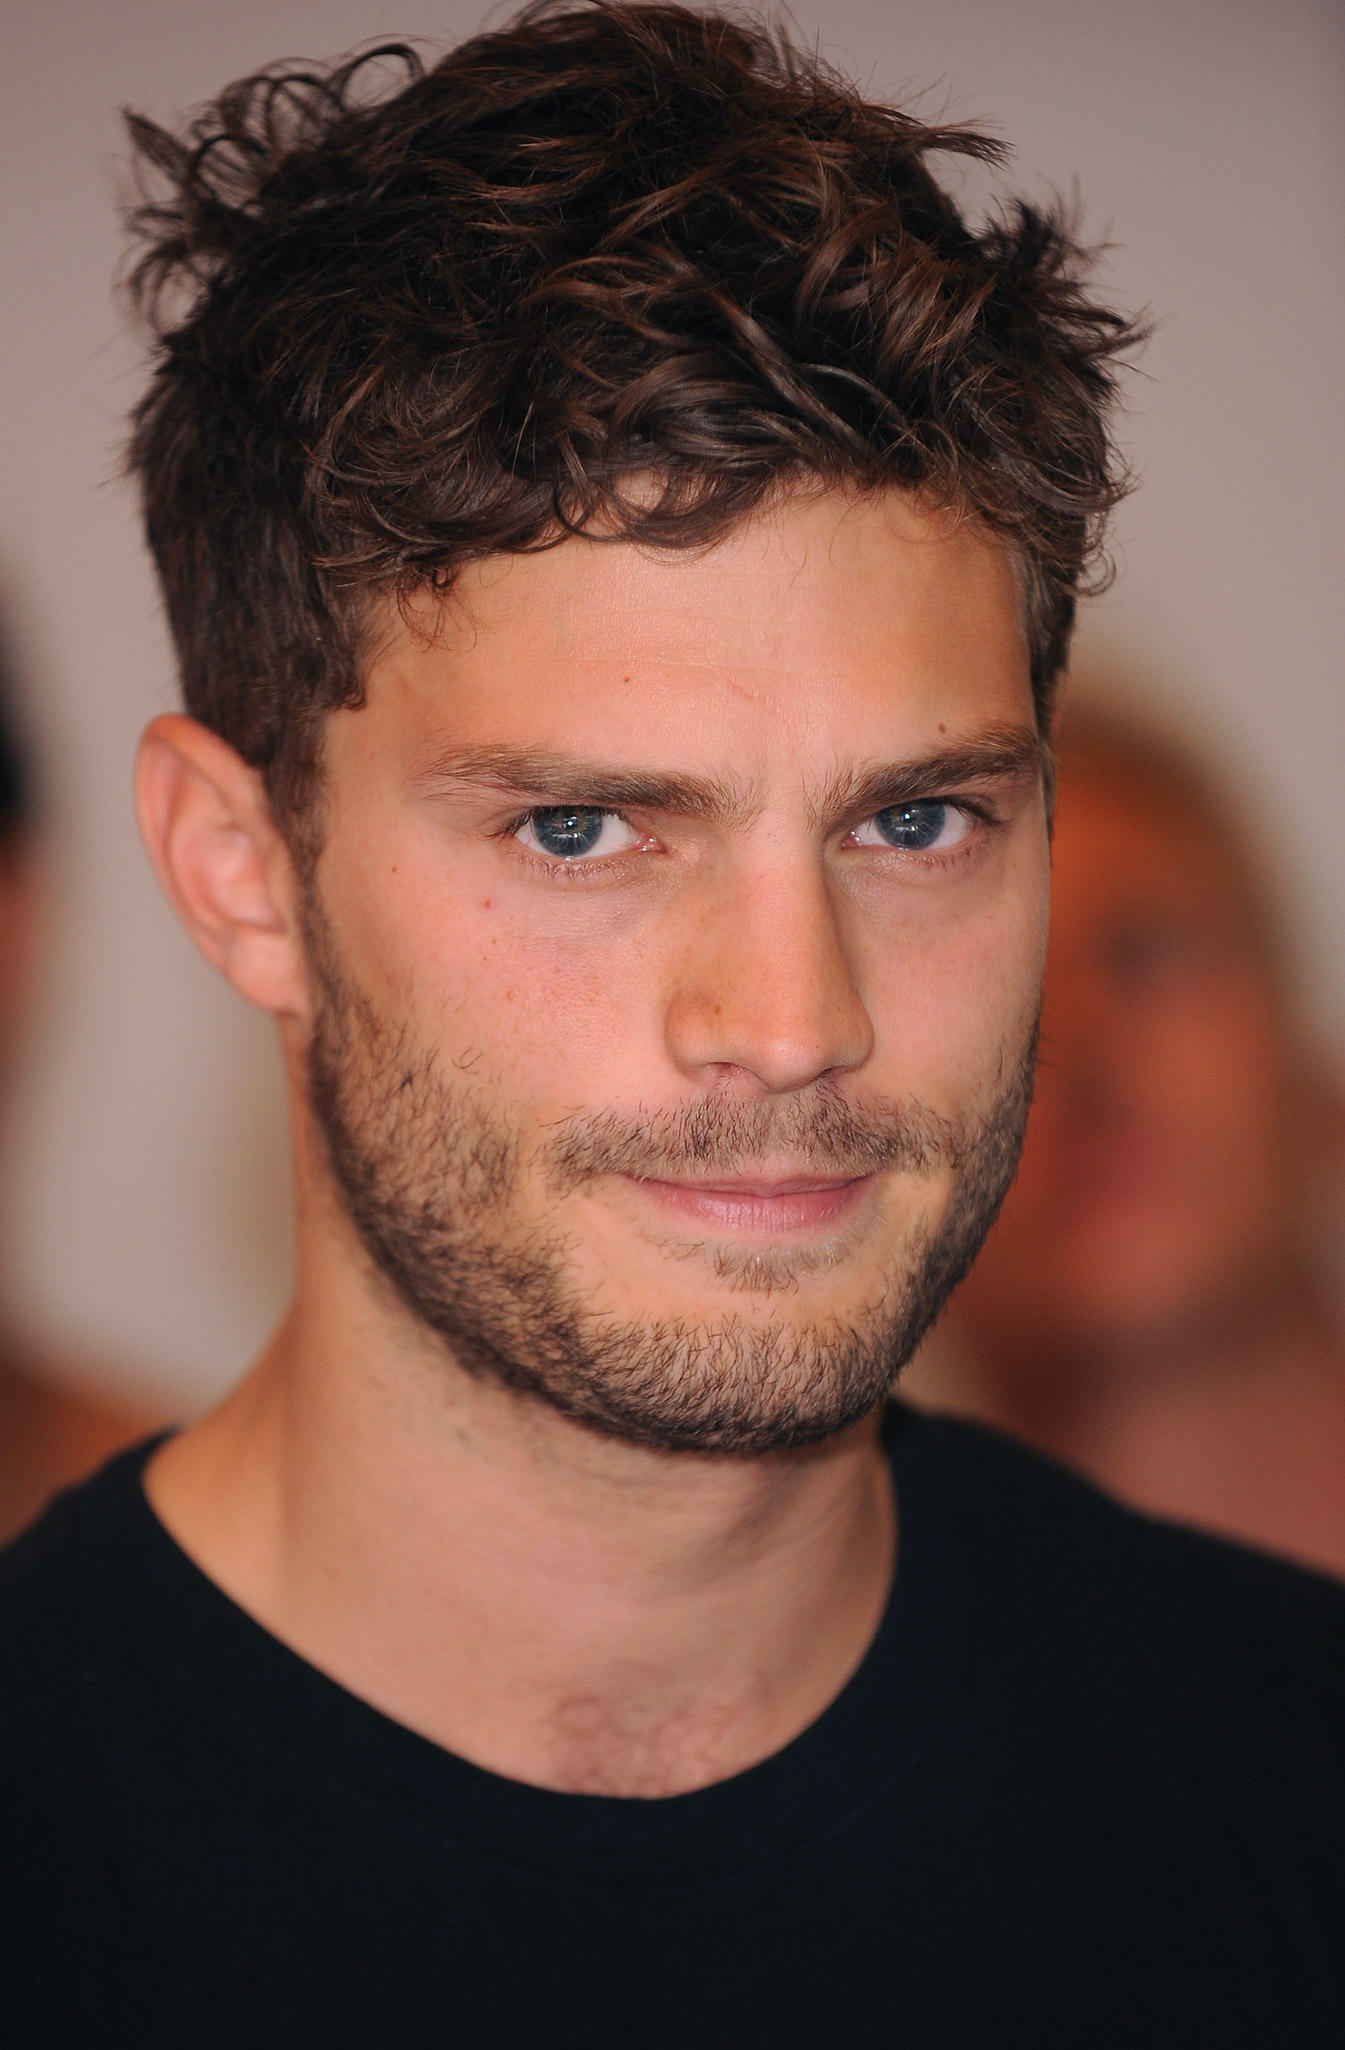 Jamie Dornan at the '9 Countries, 9 men, 1 Winner' photo call in London.